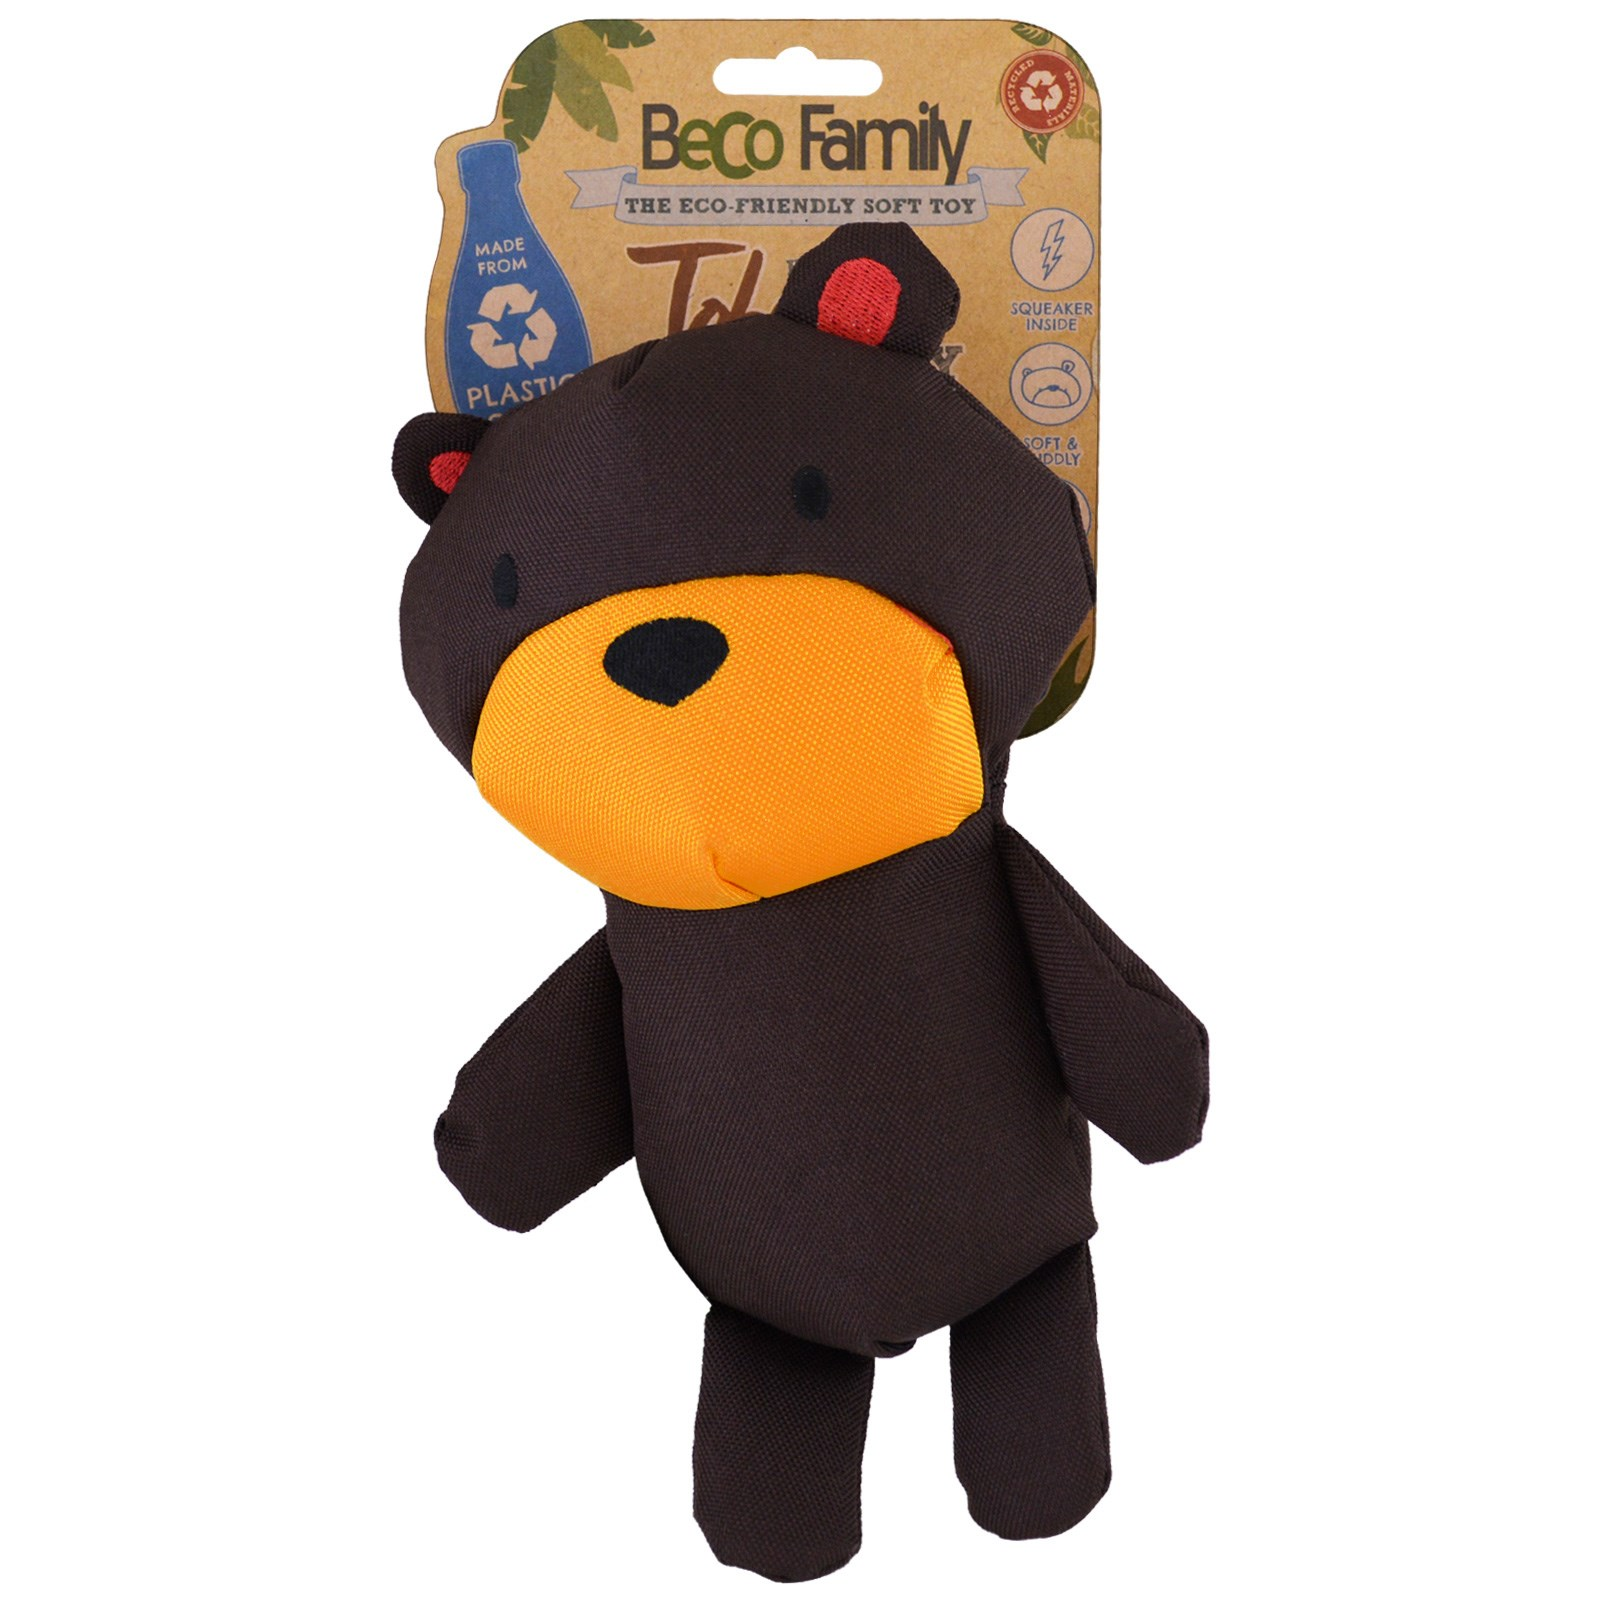 Beco Pets The Eco Friendly Soft Toy For Dogs Medium Toby the